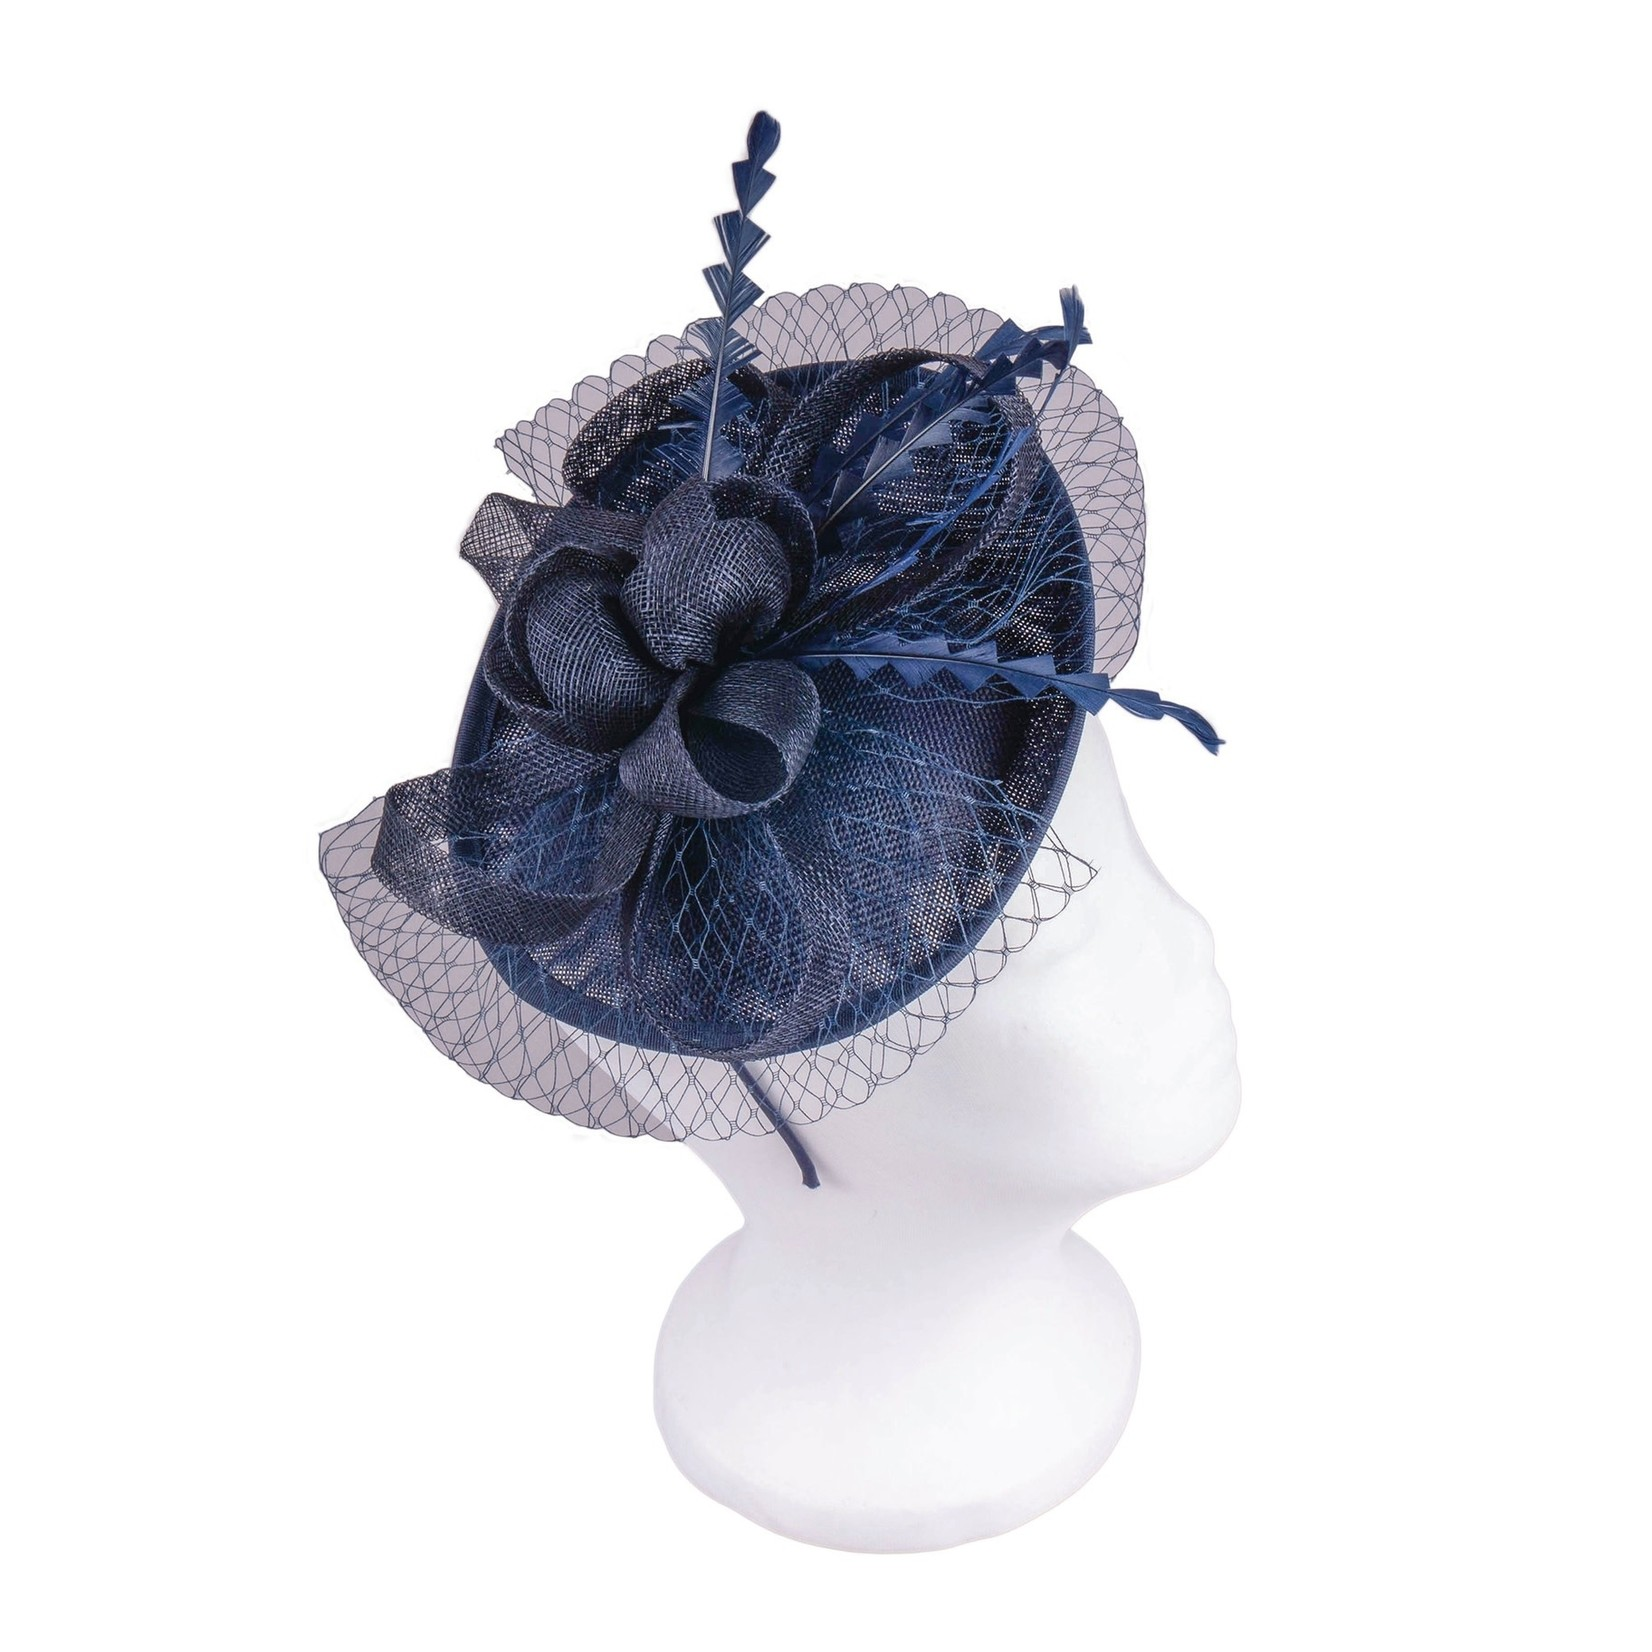 Jeanne Simmons Fascinator Headband w/Navy Feathers and Flower on Large Sinamay Disc